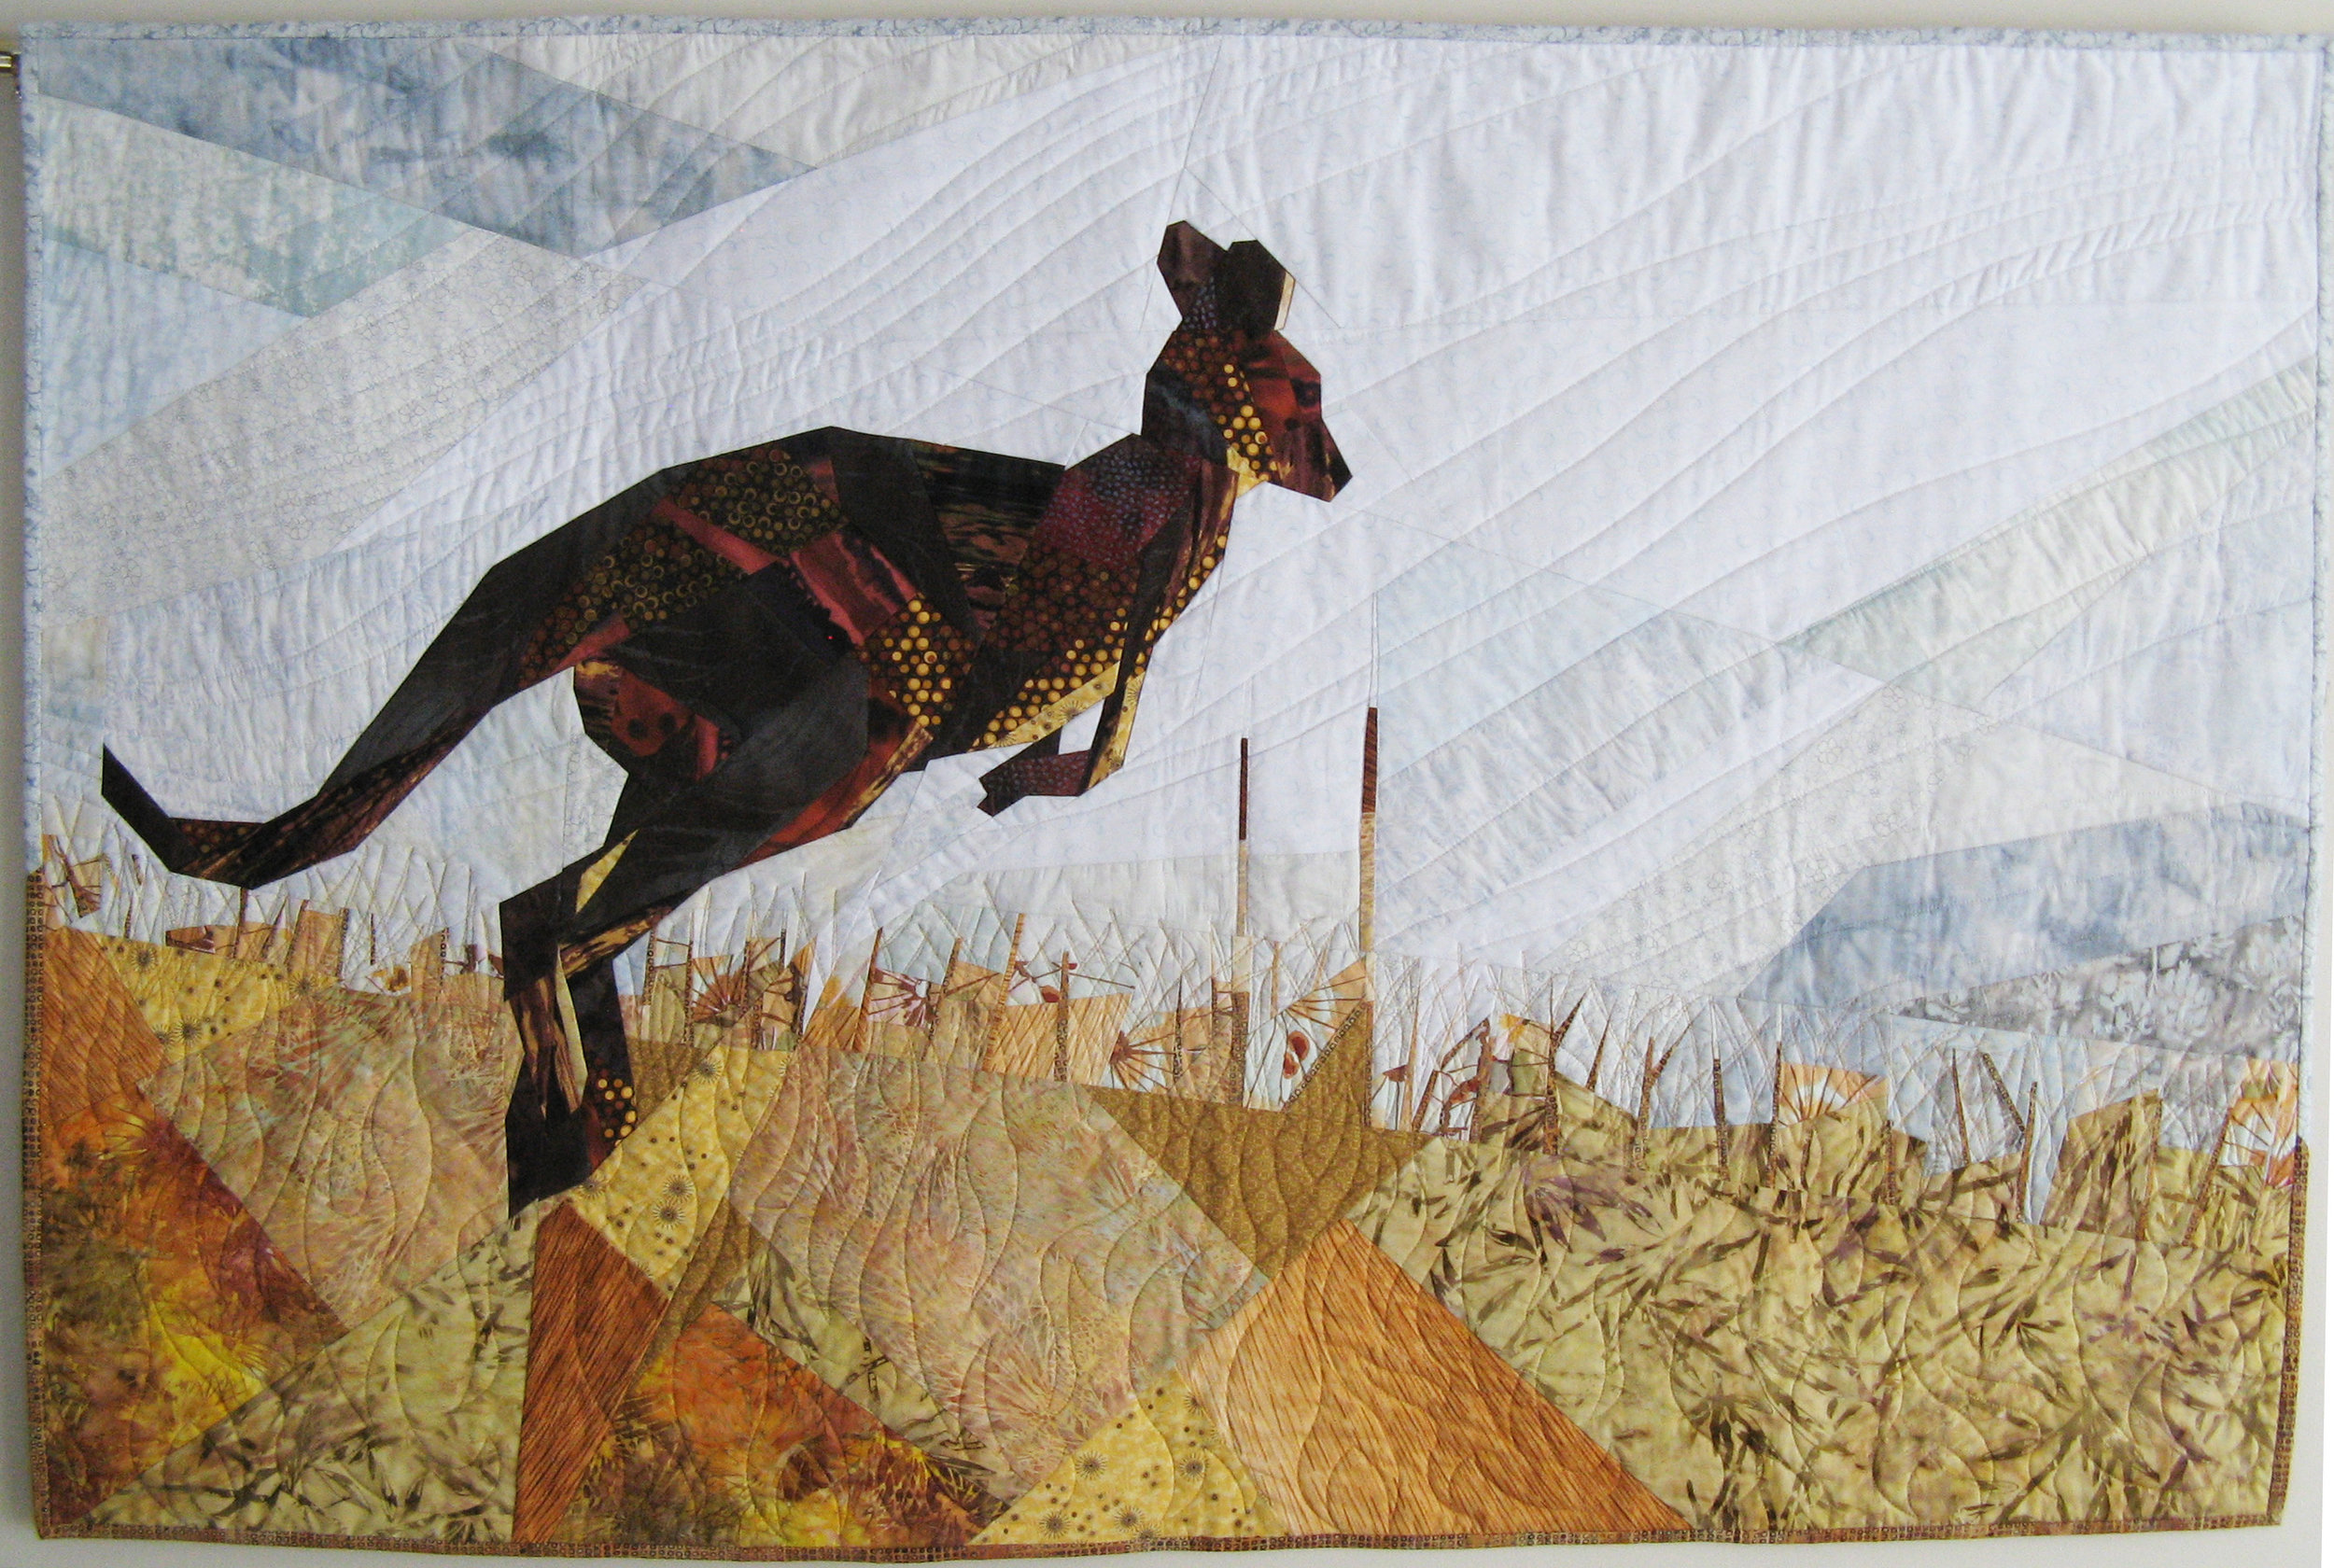 Kangaroo - 2010Private Collection - Fernie, BCI feel connected to this animal from the time I spent in Australia.Kangaroo was started in the first workshop I took with artist Ruth MacDowell. A prolific artist and generous teacher, Ruth's style and techniques continue to influence my artistic work.